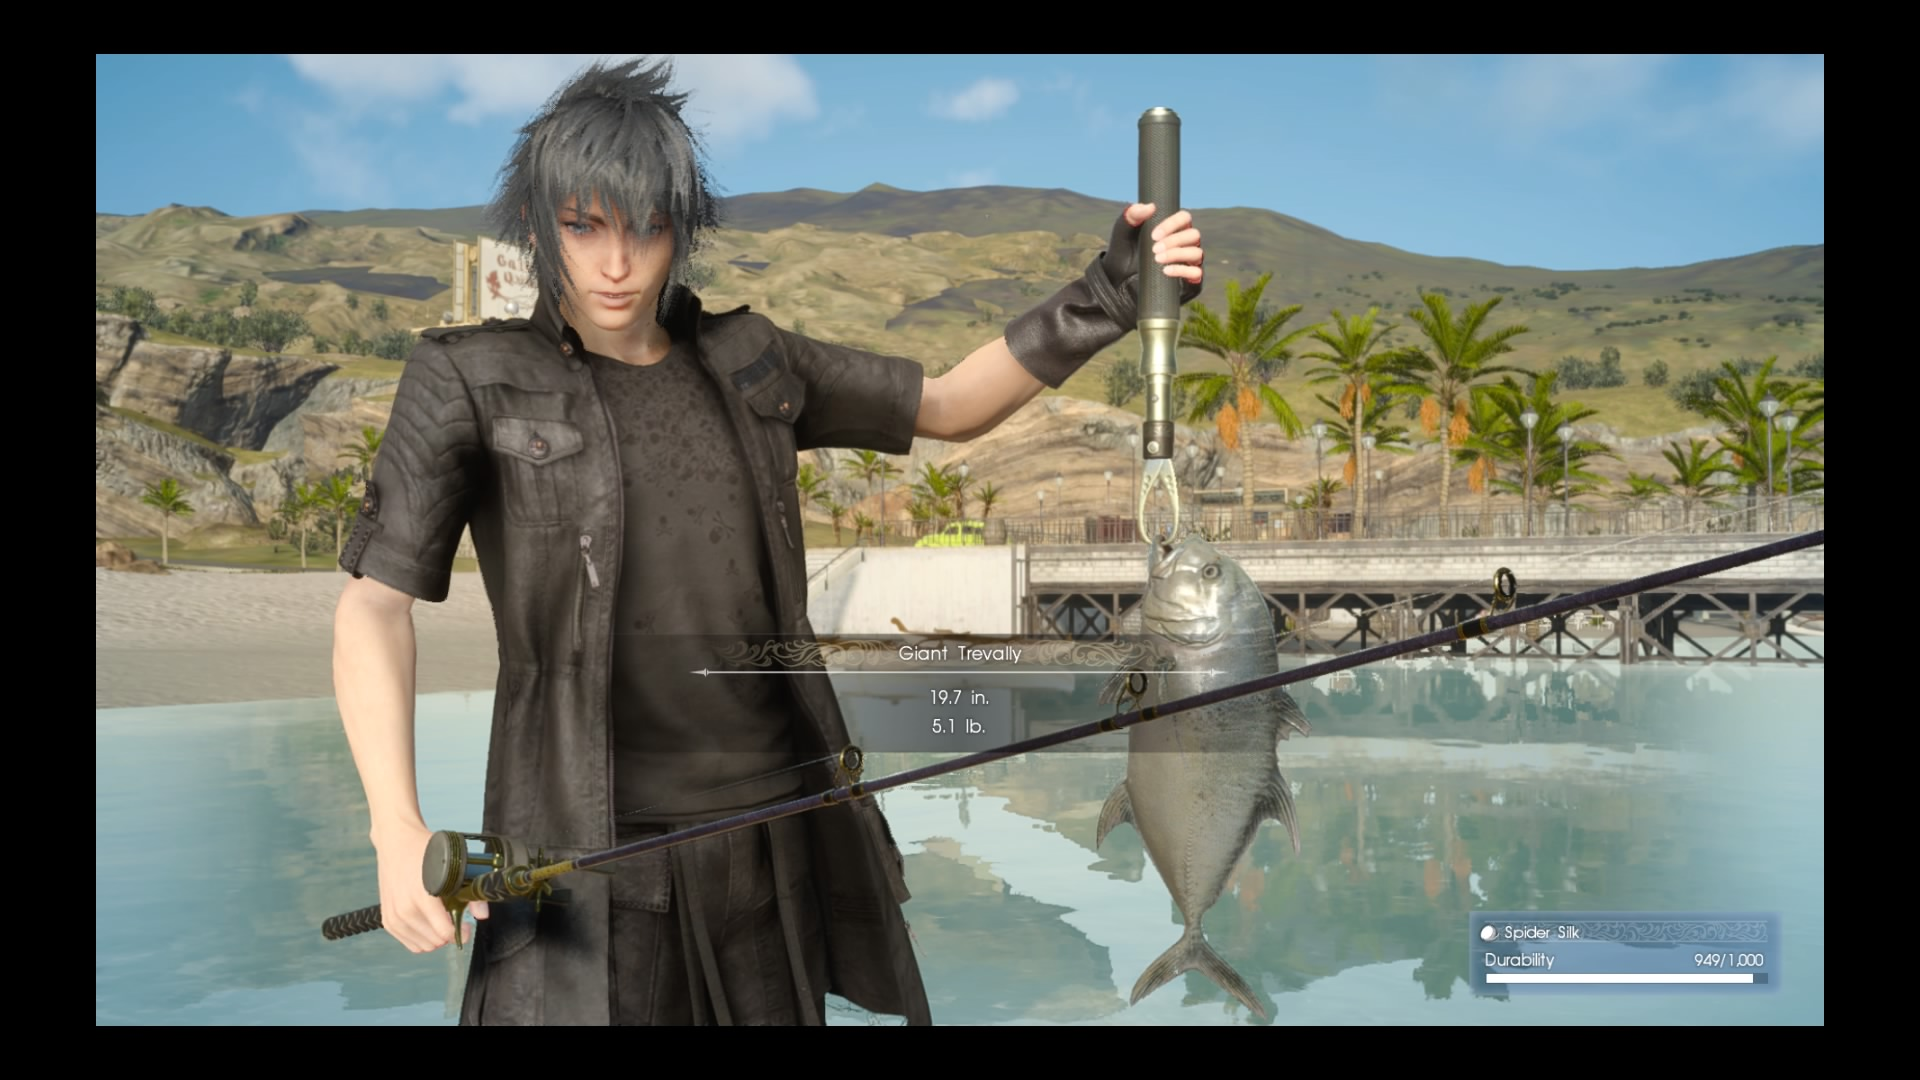 Goondu Review Final Fantasy Xv Techgoondu Deluxe Edition Region 3 Big Fun Minigames Fishing Is With A Wide Variety Fish To Catch Lures Use And Spots Find Screenshot Yap Hui Bin